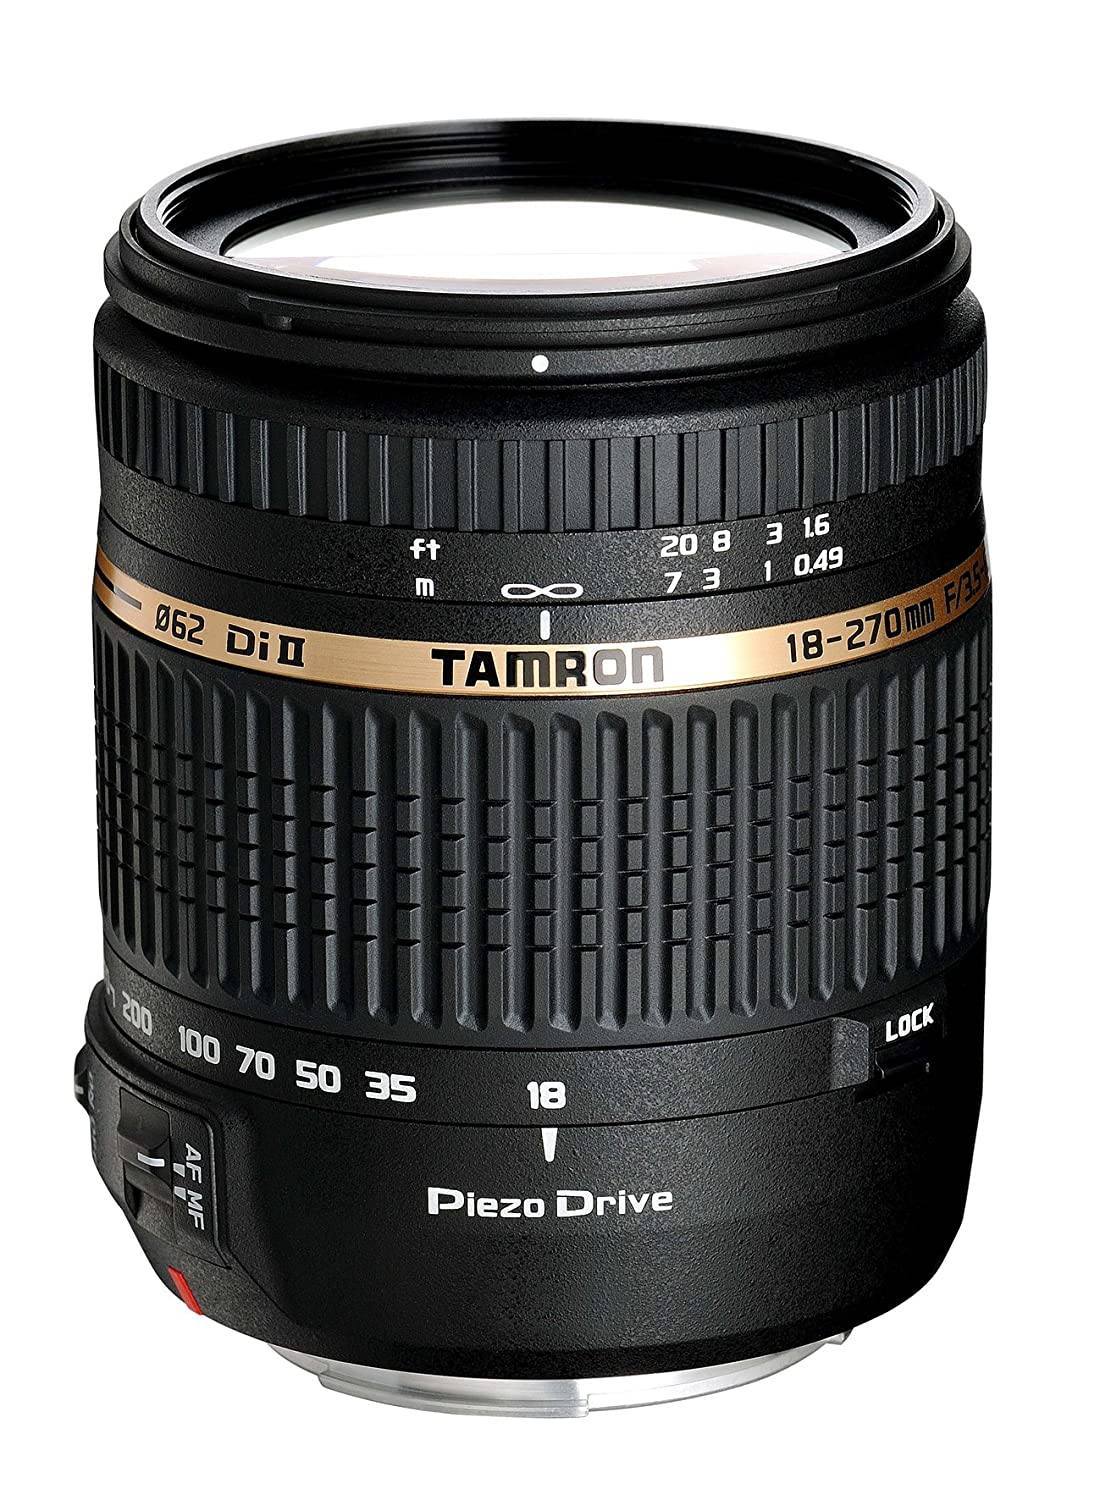 Tamron 18-270mm All-in-One Zoom Lens for Sony DSLR Camera